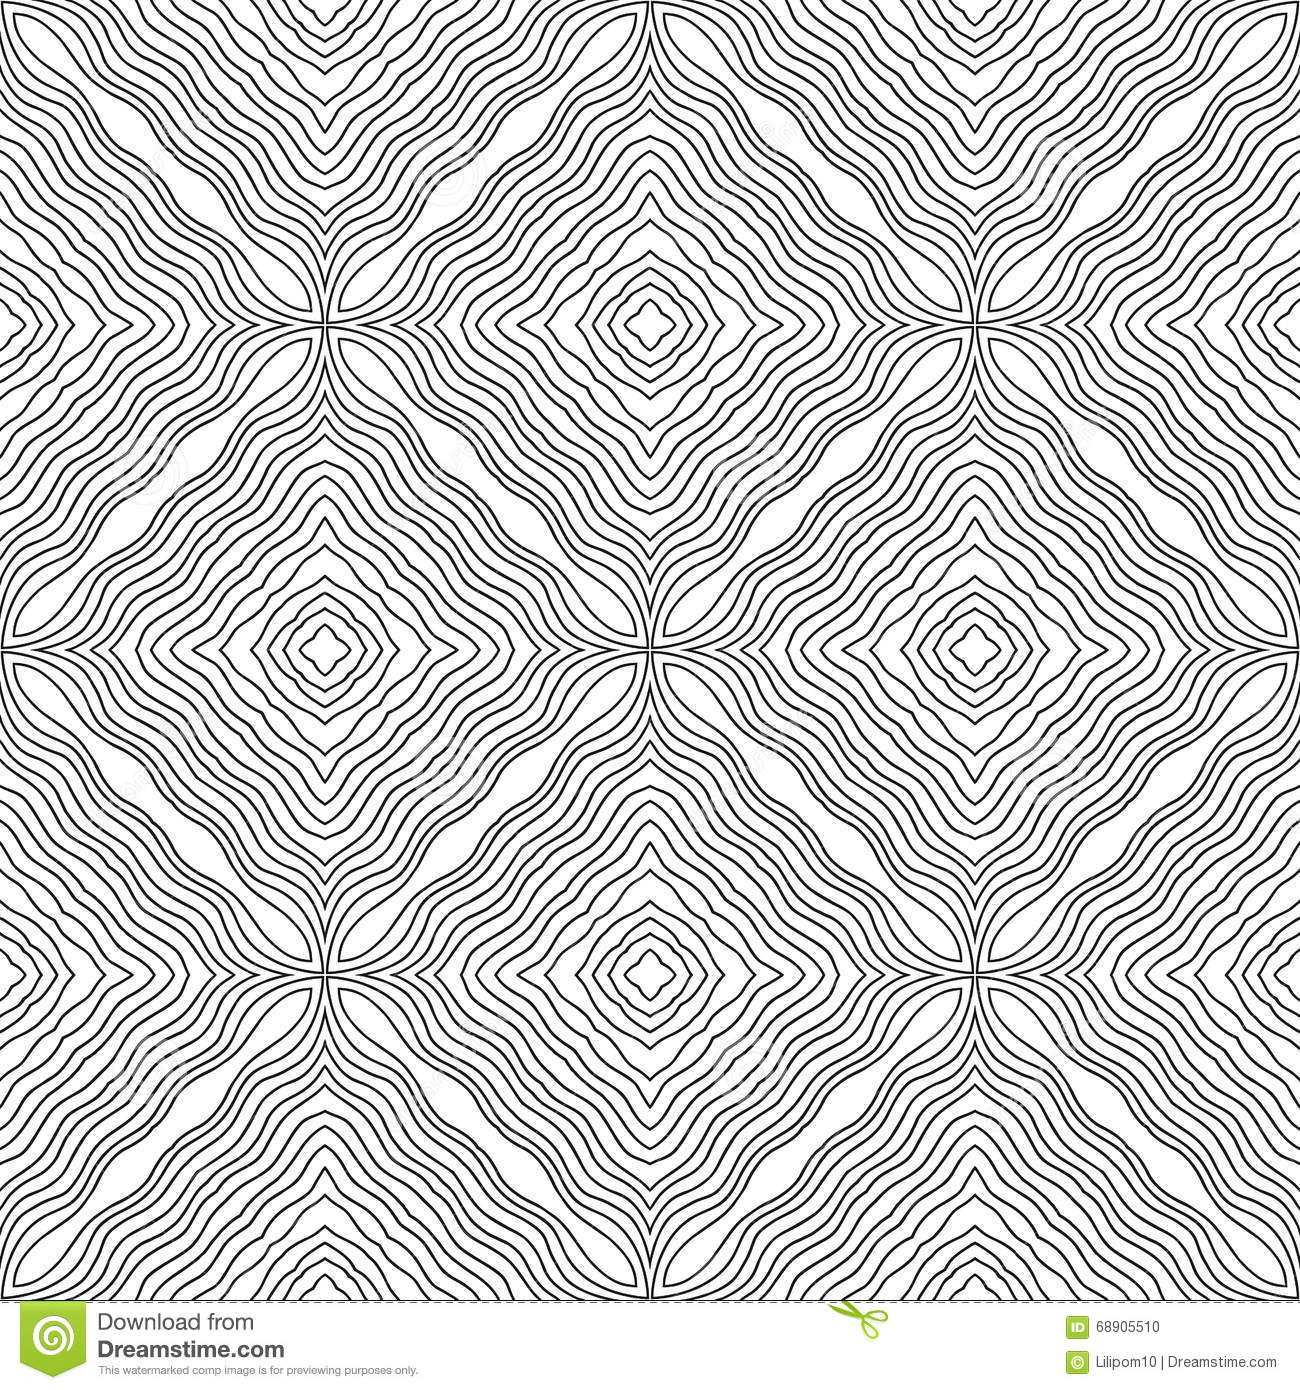 Colouring in pages abstract patterns - Royalty Free Vector Download Black And White Abstract Pattern For Colouring Pages